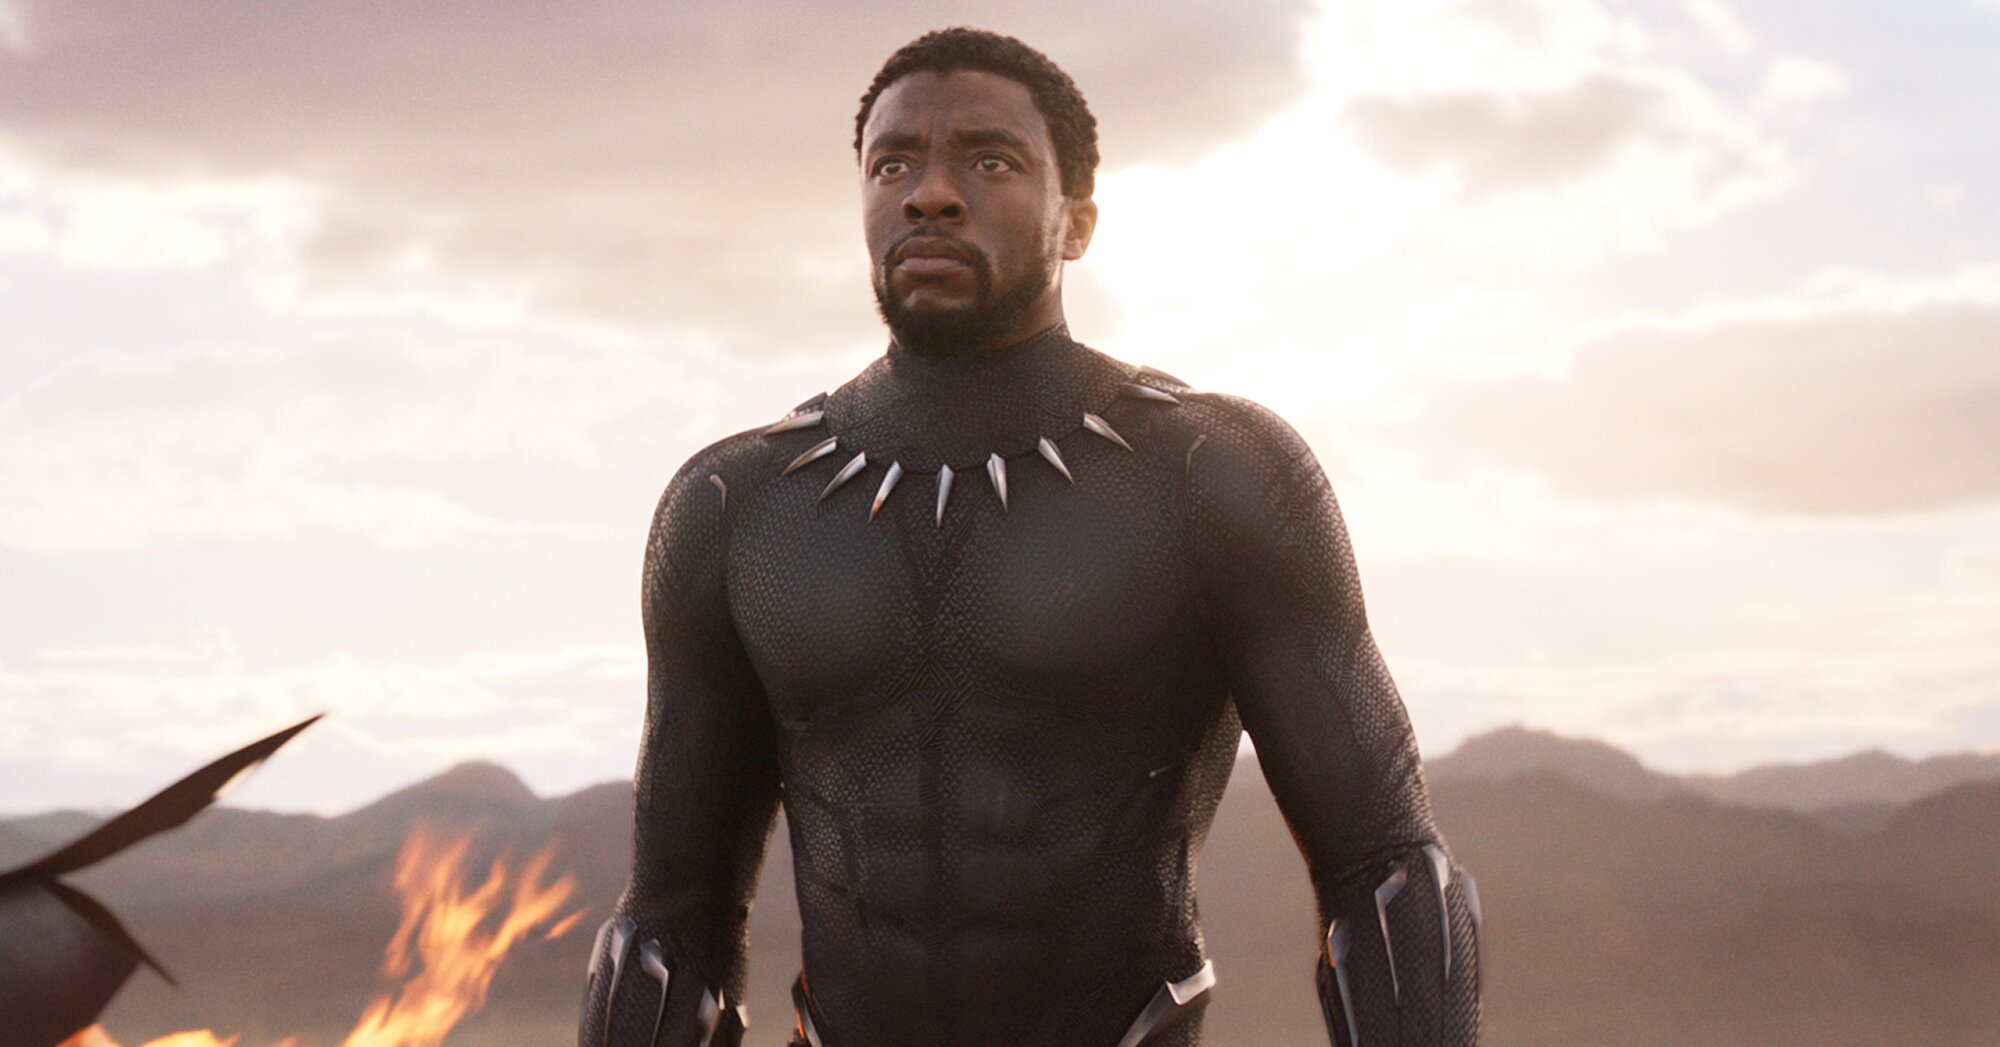 Walmart announces free drive-in movie screenings of 'Black Panther,' 'LEGO Batman,' and more